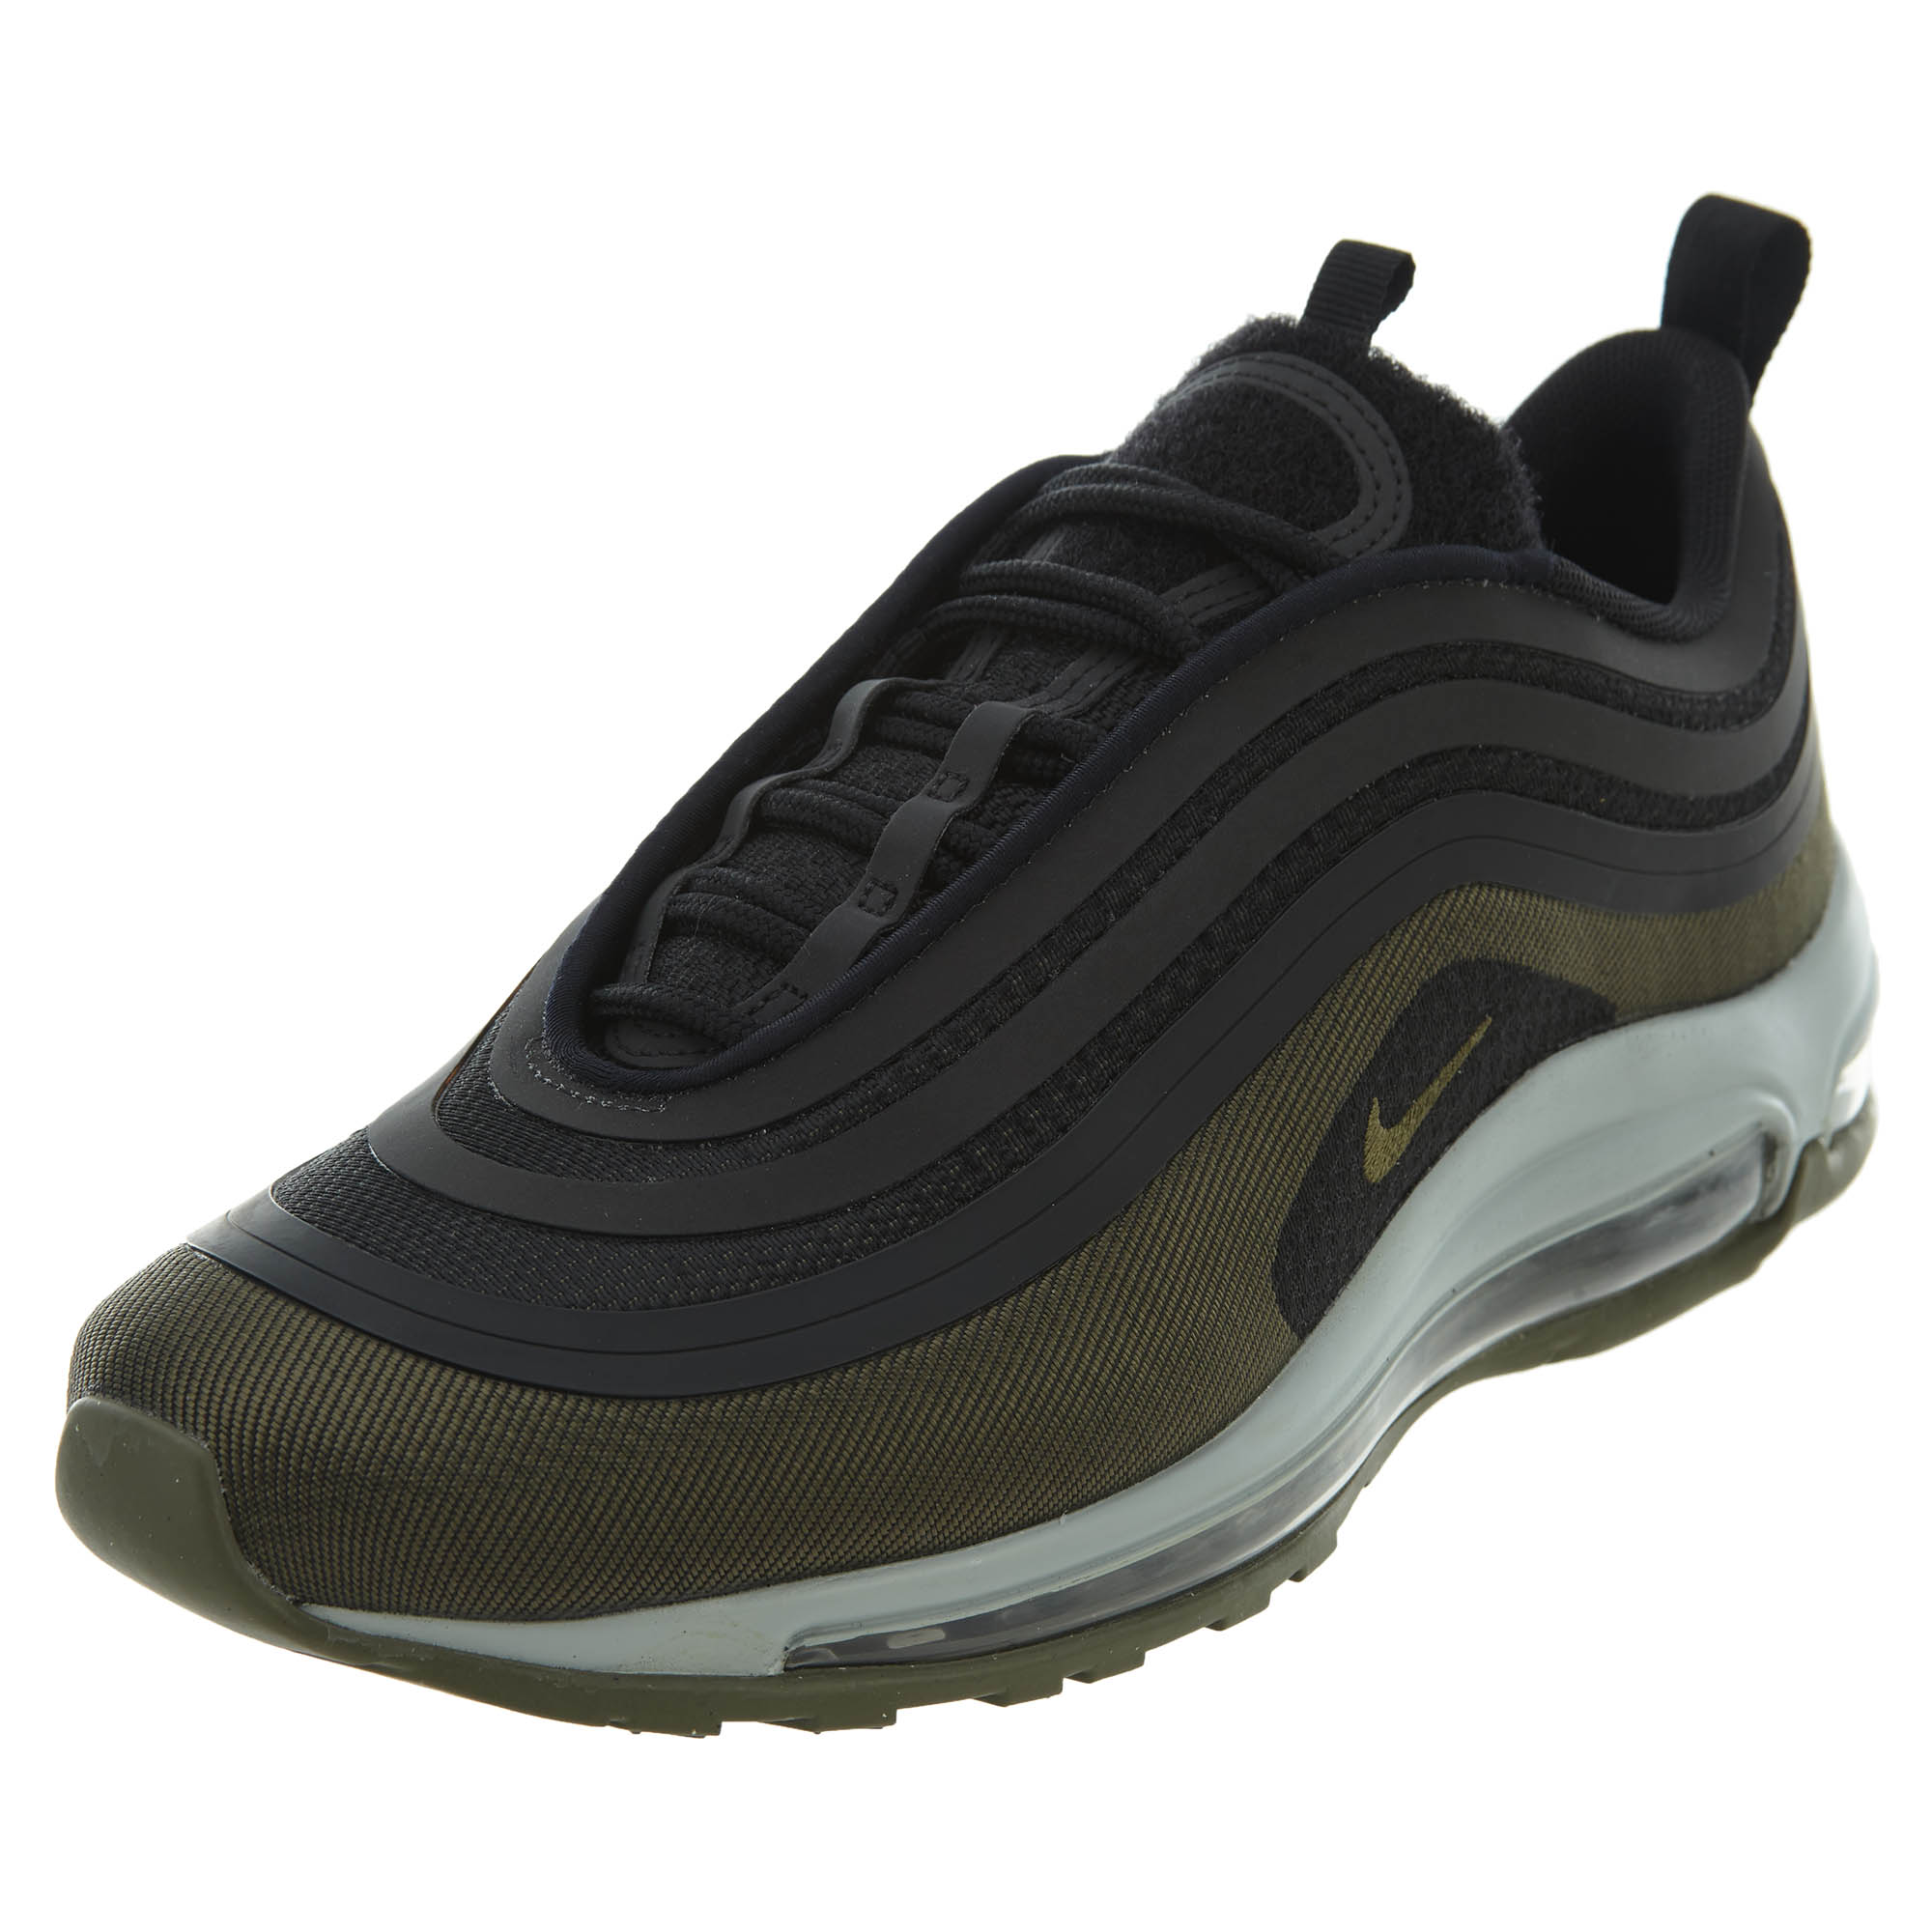 4f955f3d73 Details about Nike Mens Air Max 97 Ultra 17 Hal Running Shoes AH9945-001